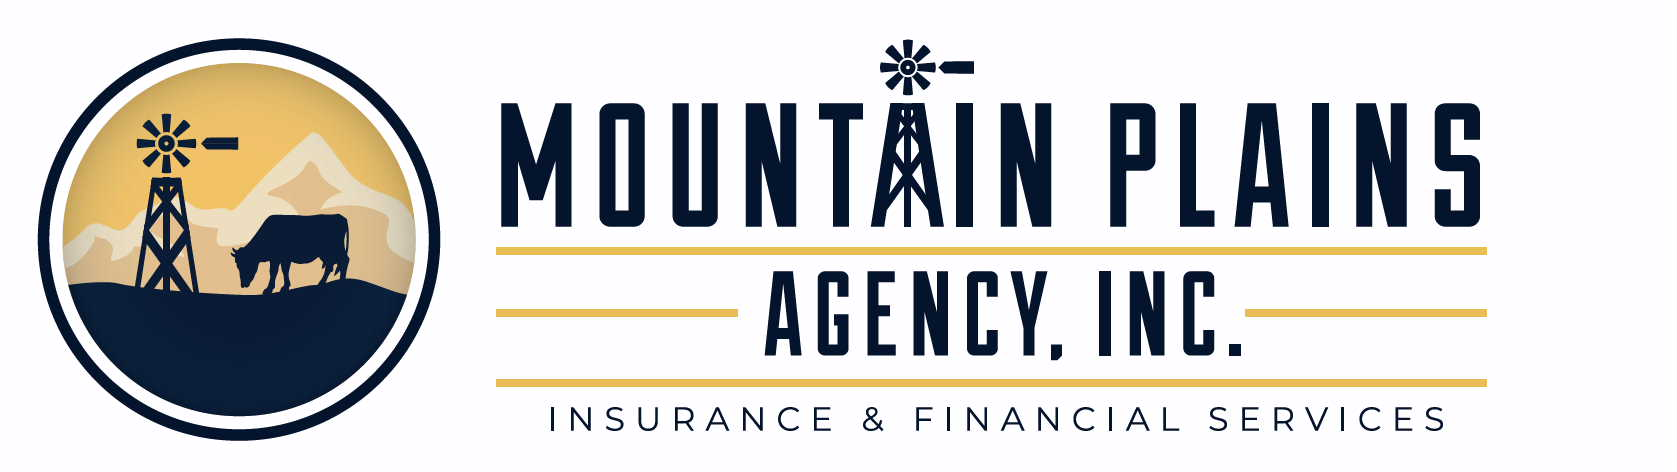 Mountain Plains Agency, Inc.